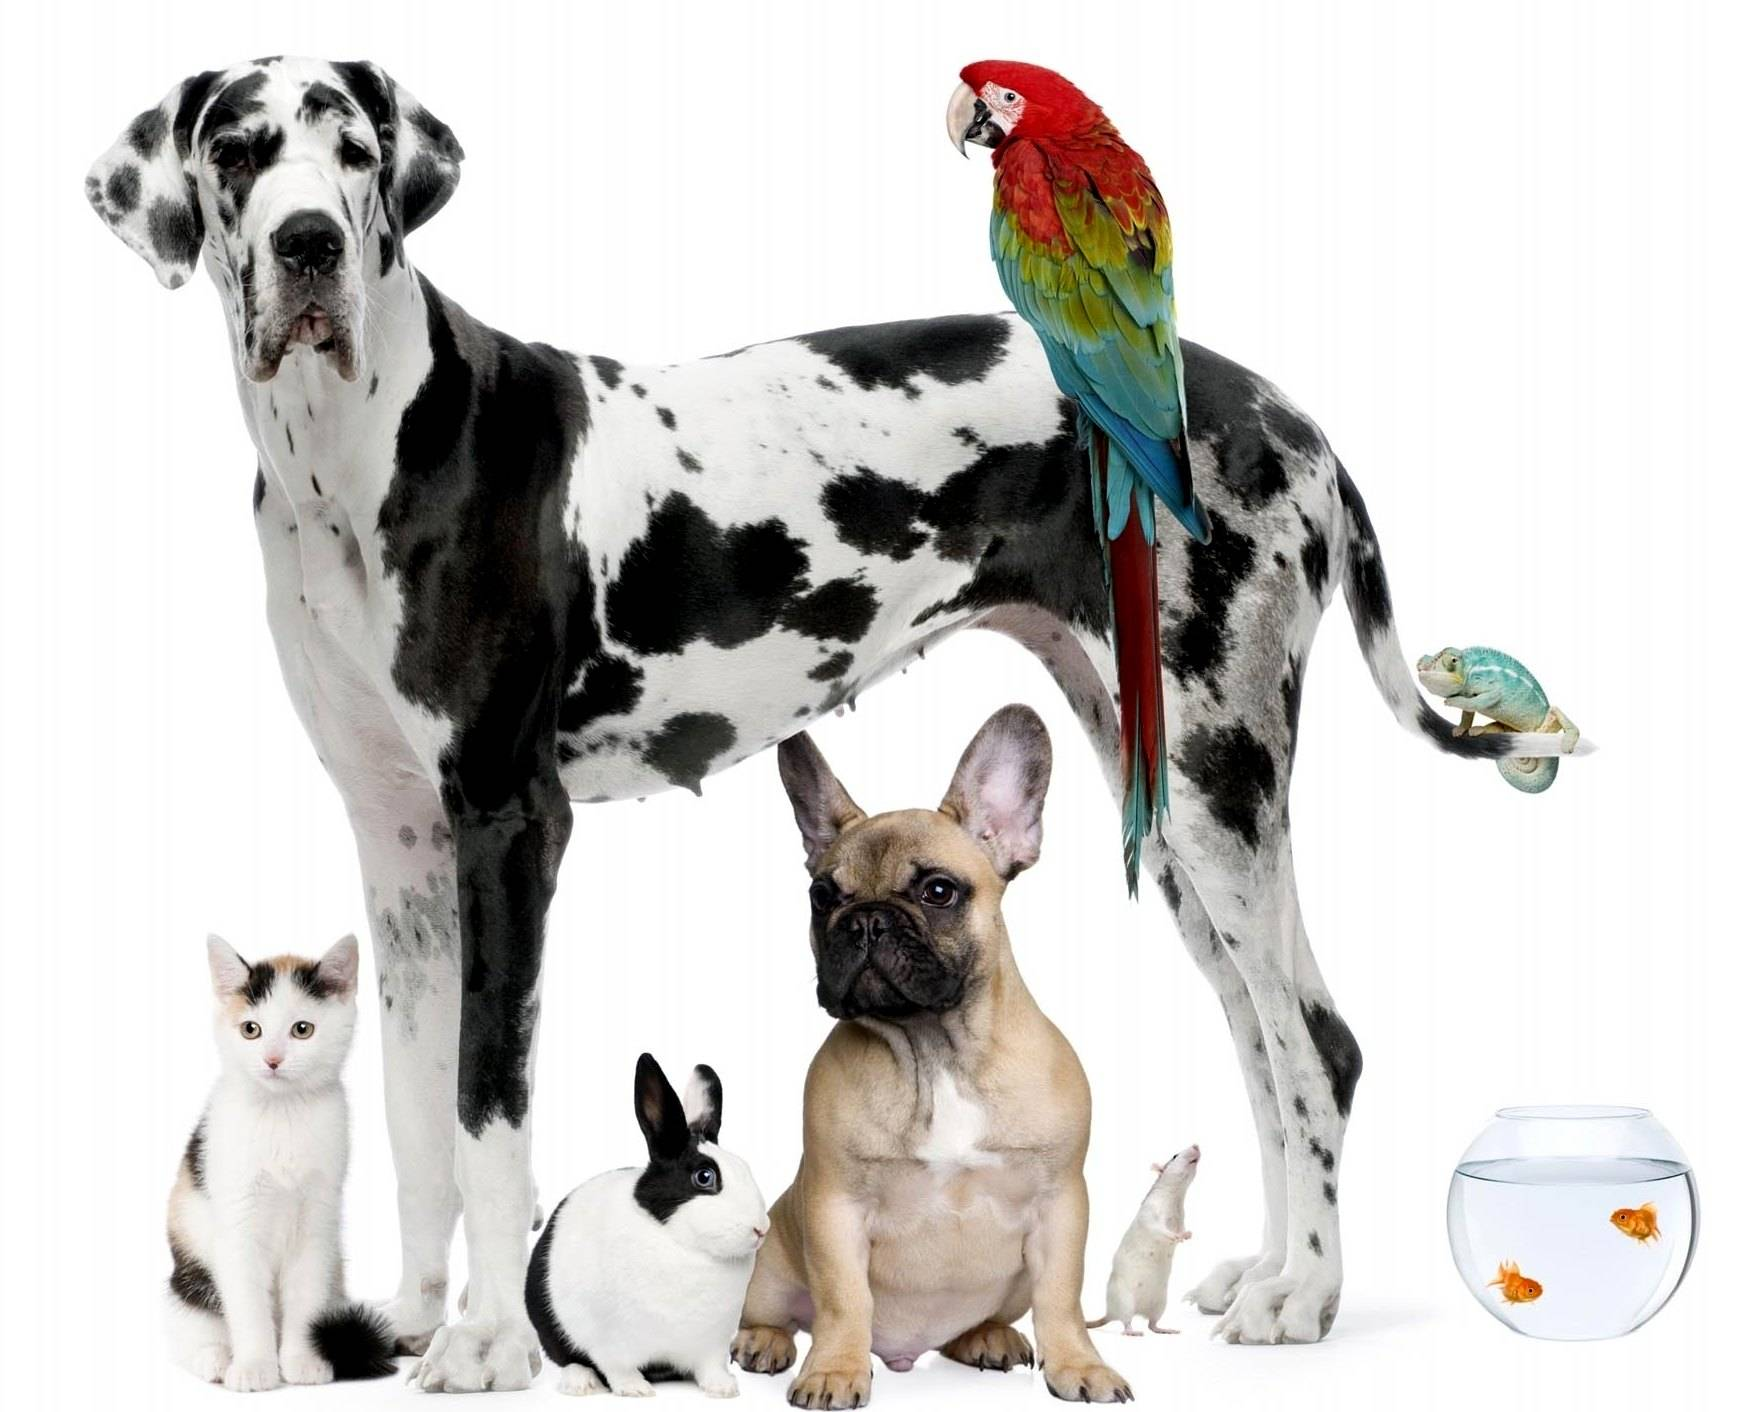 stuffpoint animals home pets images wallpapers background pic tweet 1758x1412